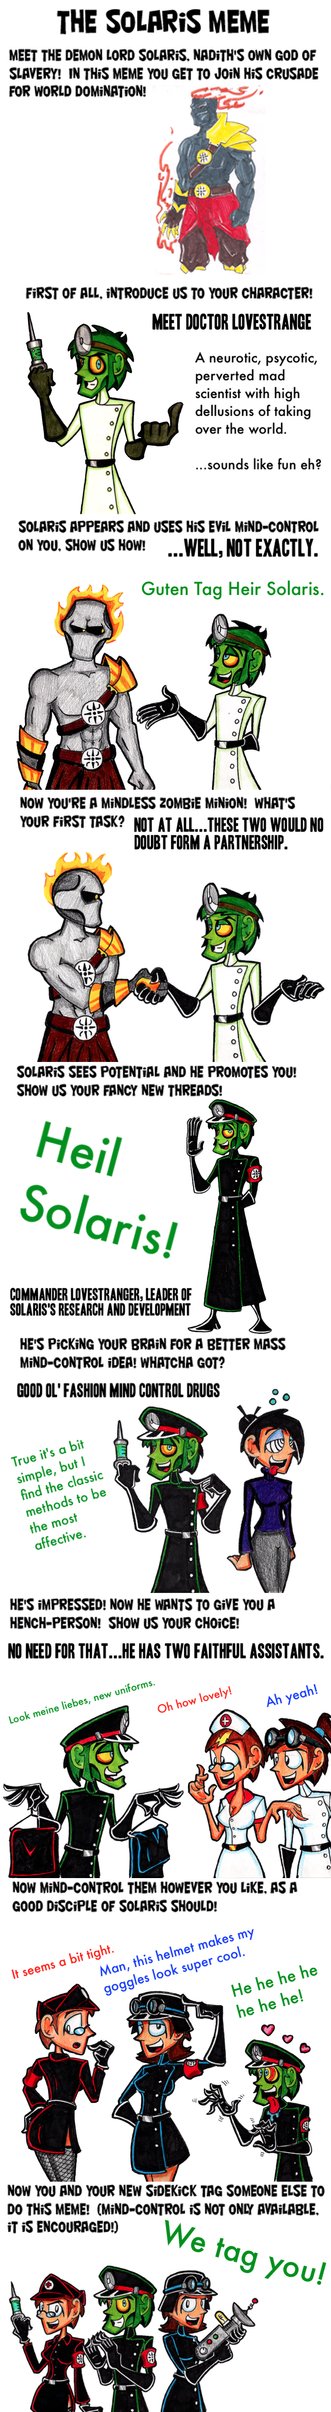 The Solaris Meme by brothersdude